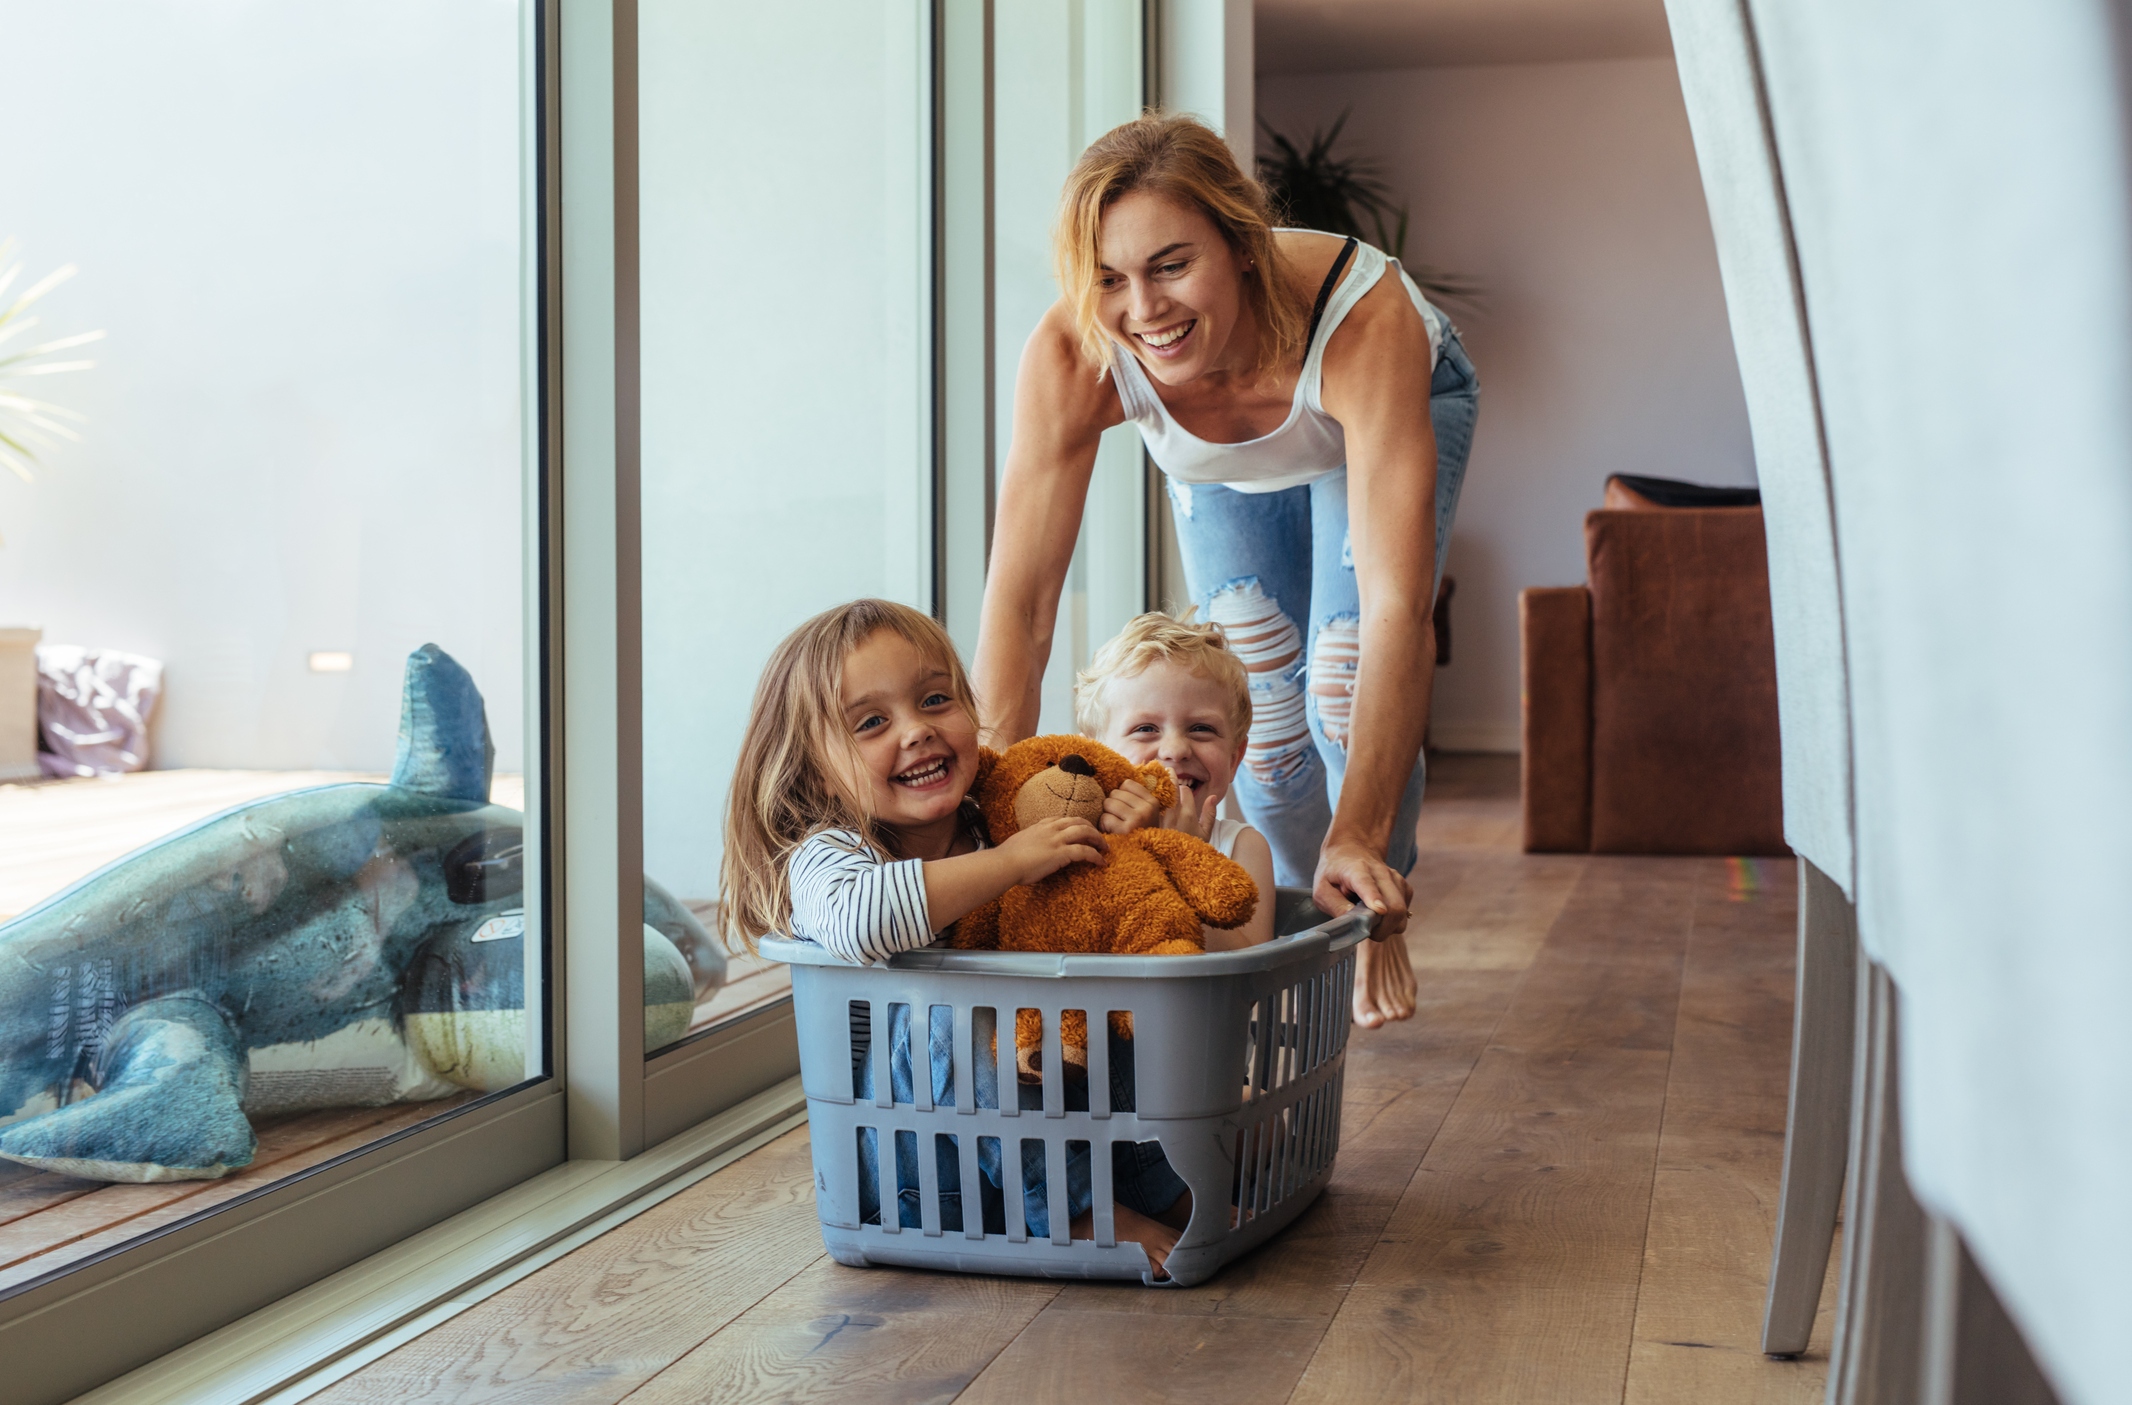 Happy young mother pushing her 2 children sitting in laundry basket at home